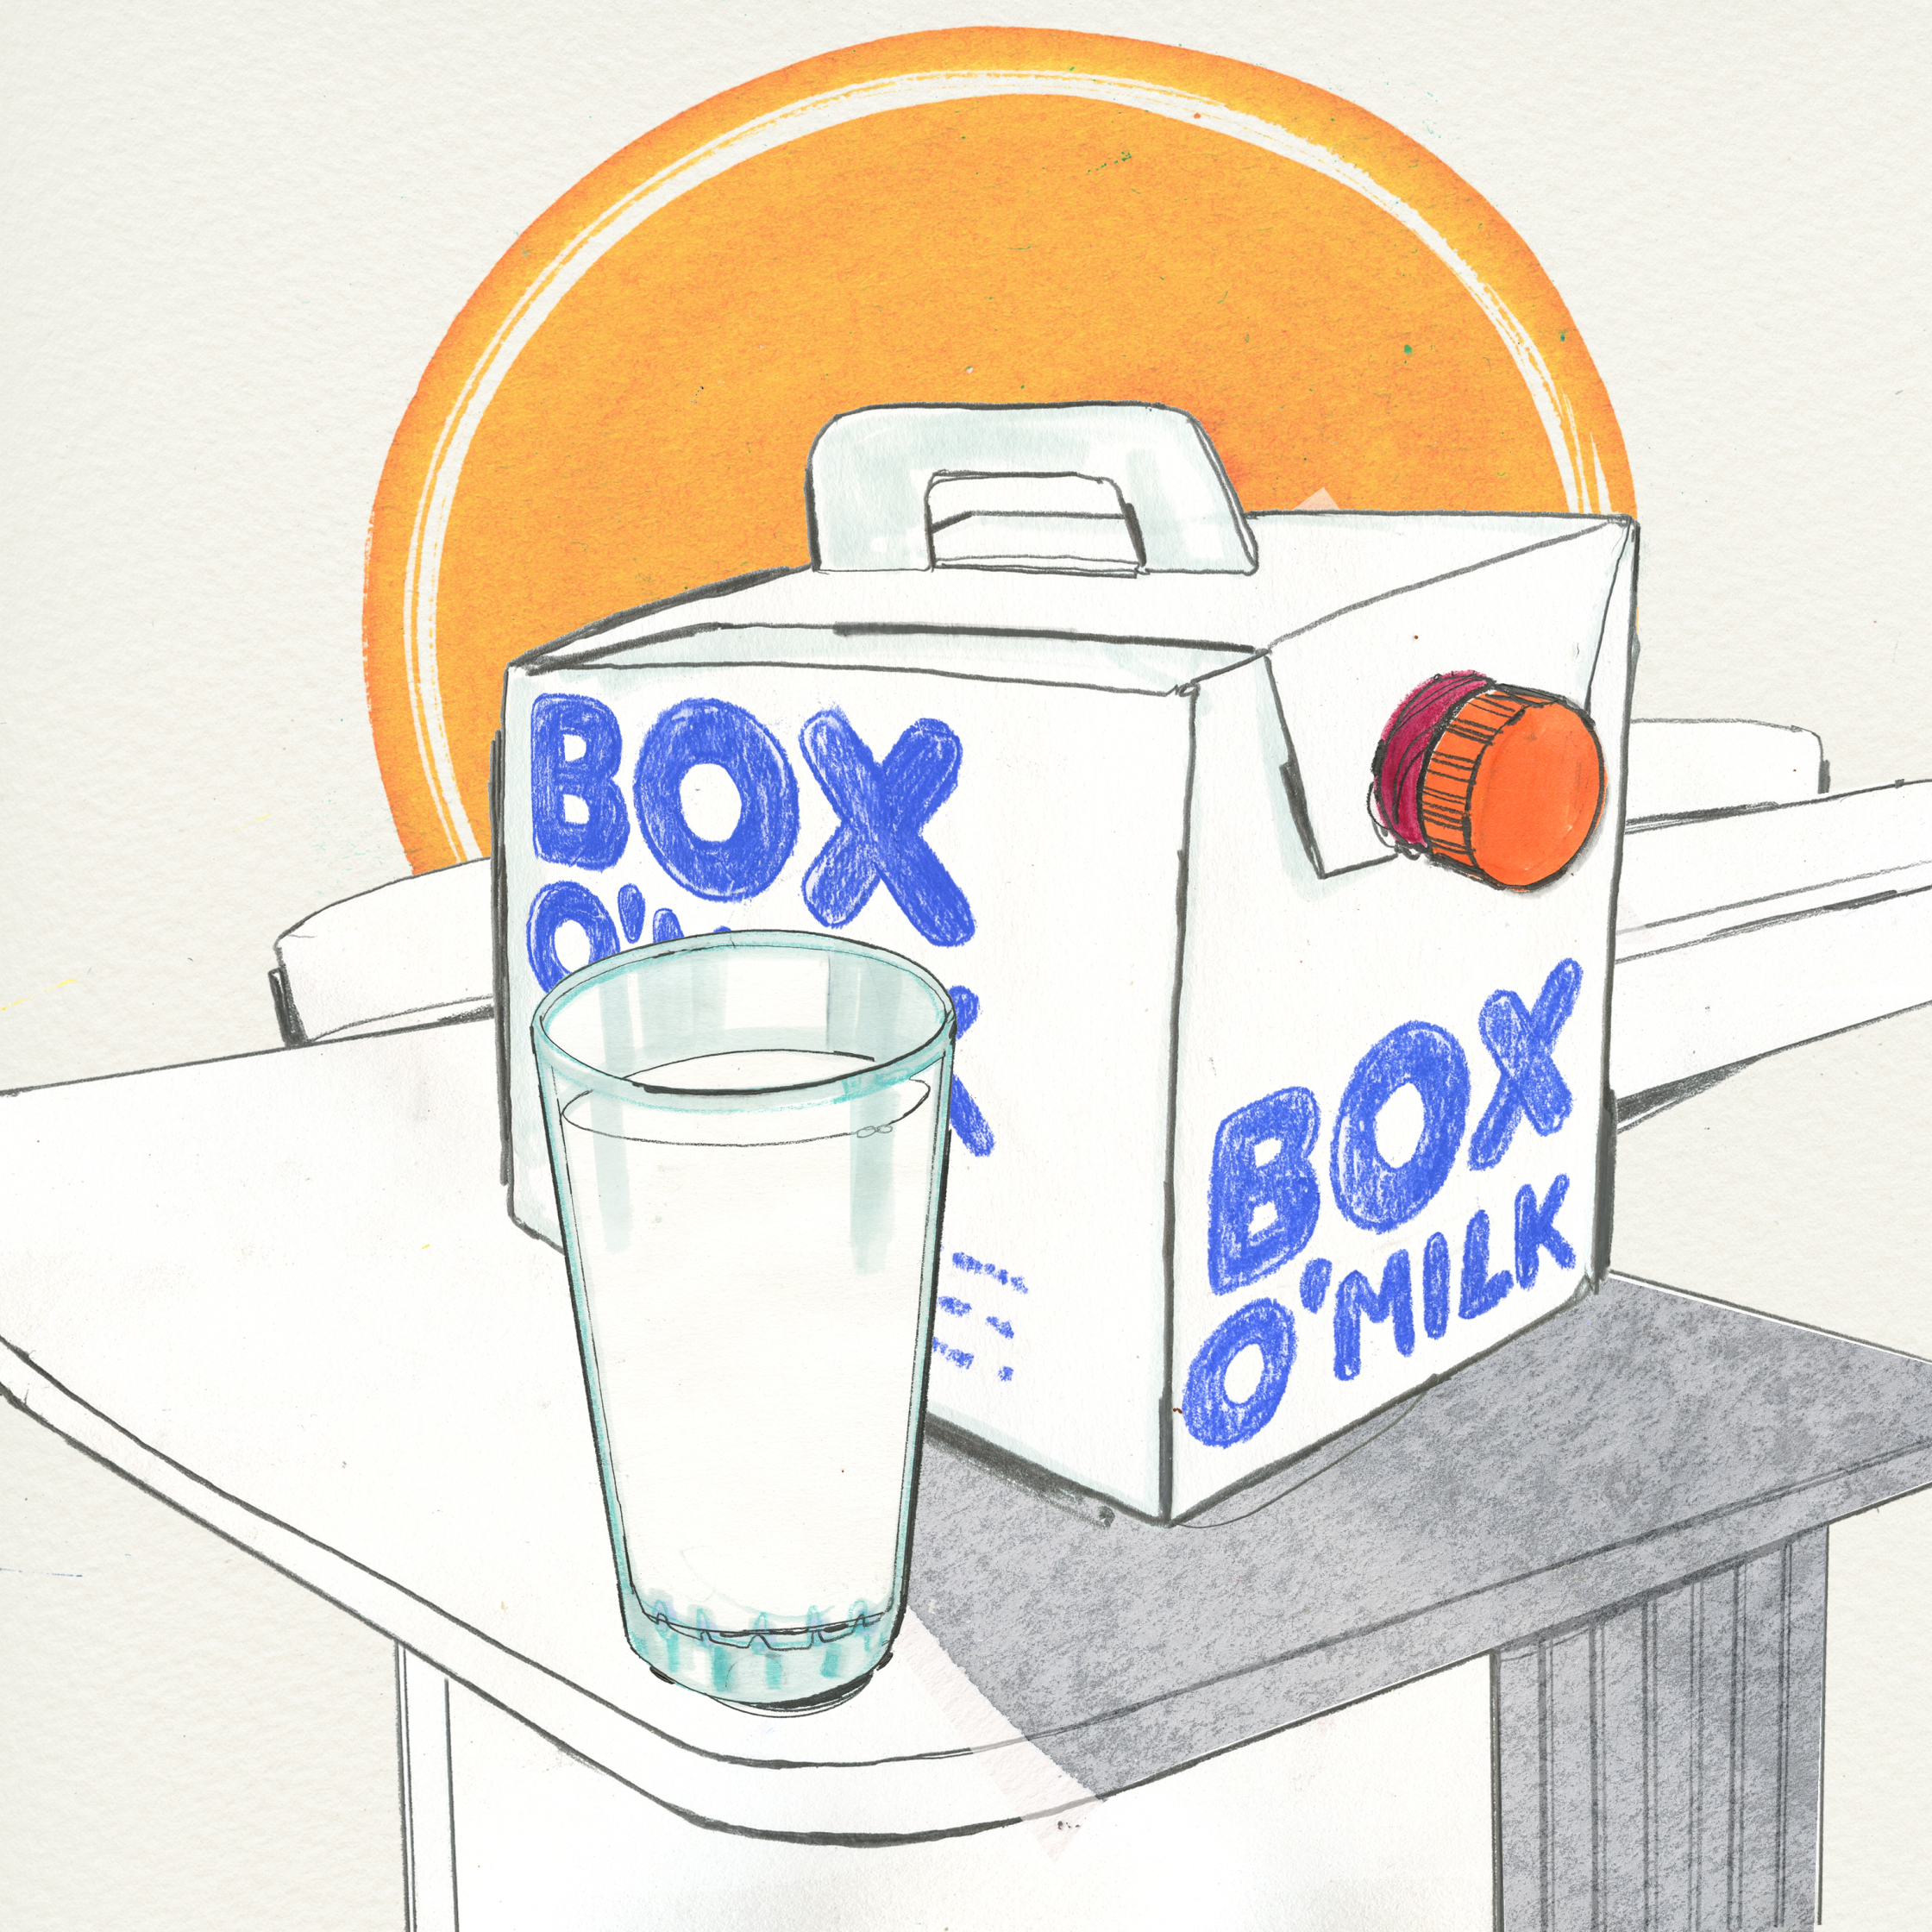 box o joe MILK image orange circle.jpg